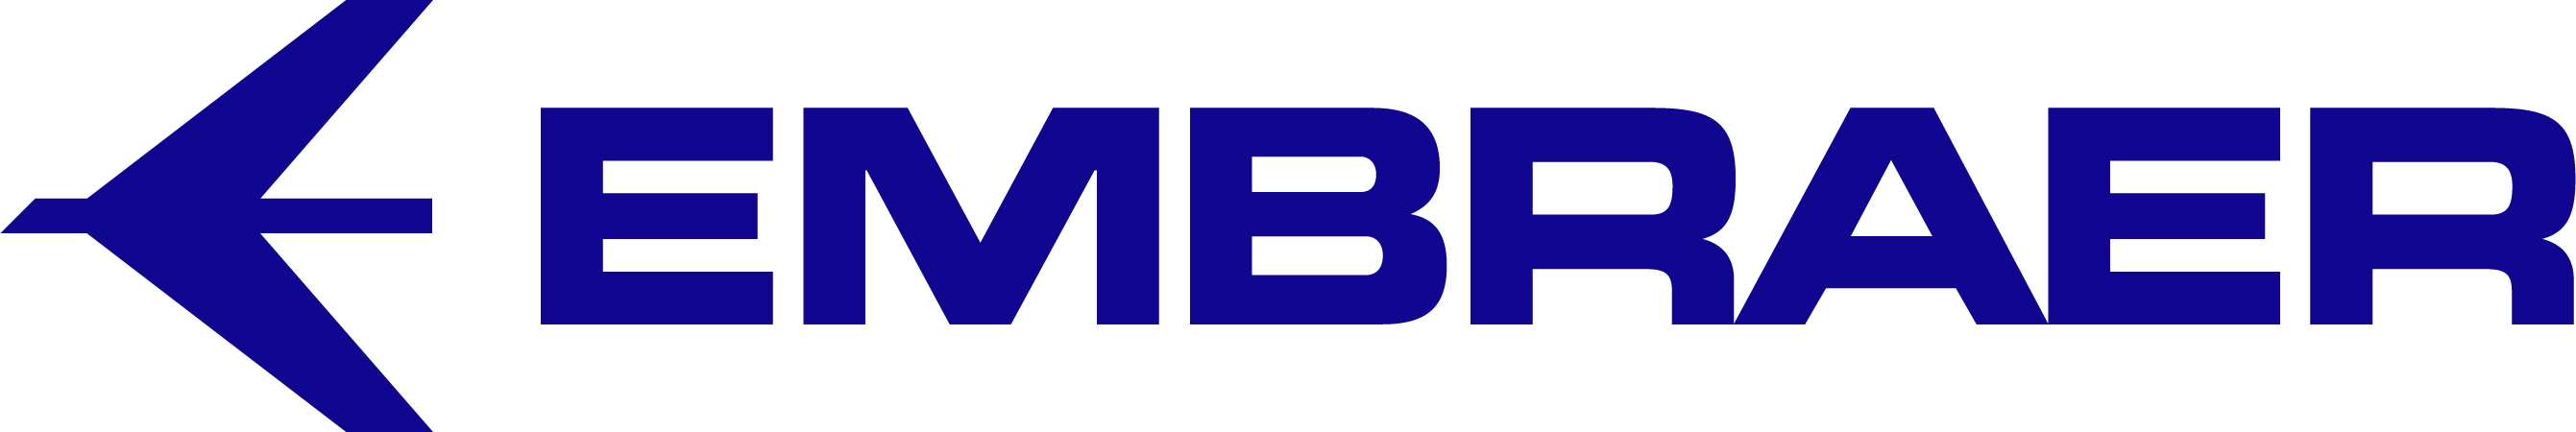 Embraer Executive Aircraft, Inc. logo